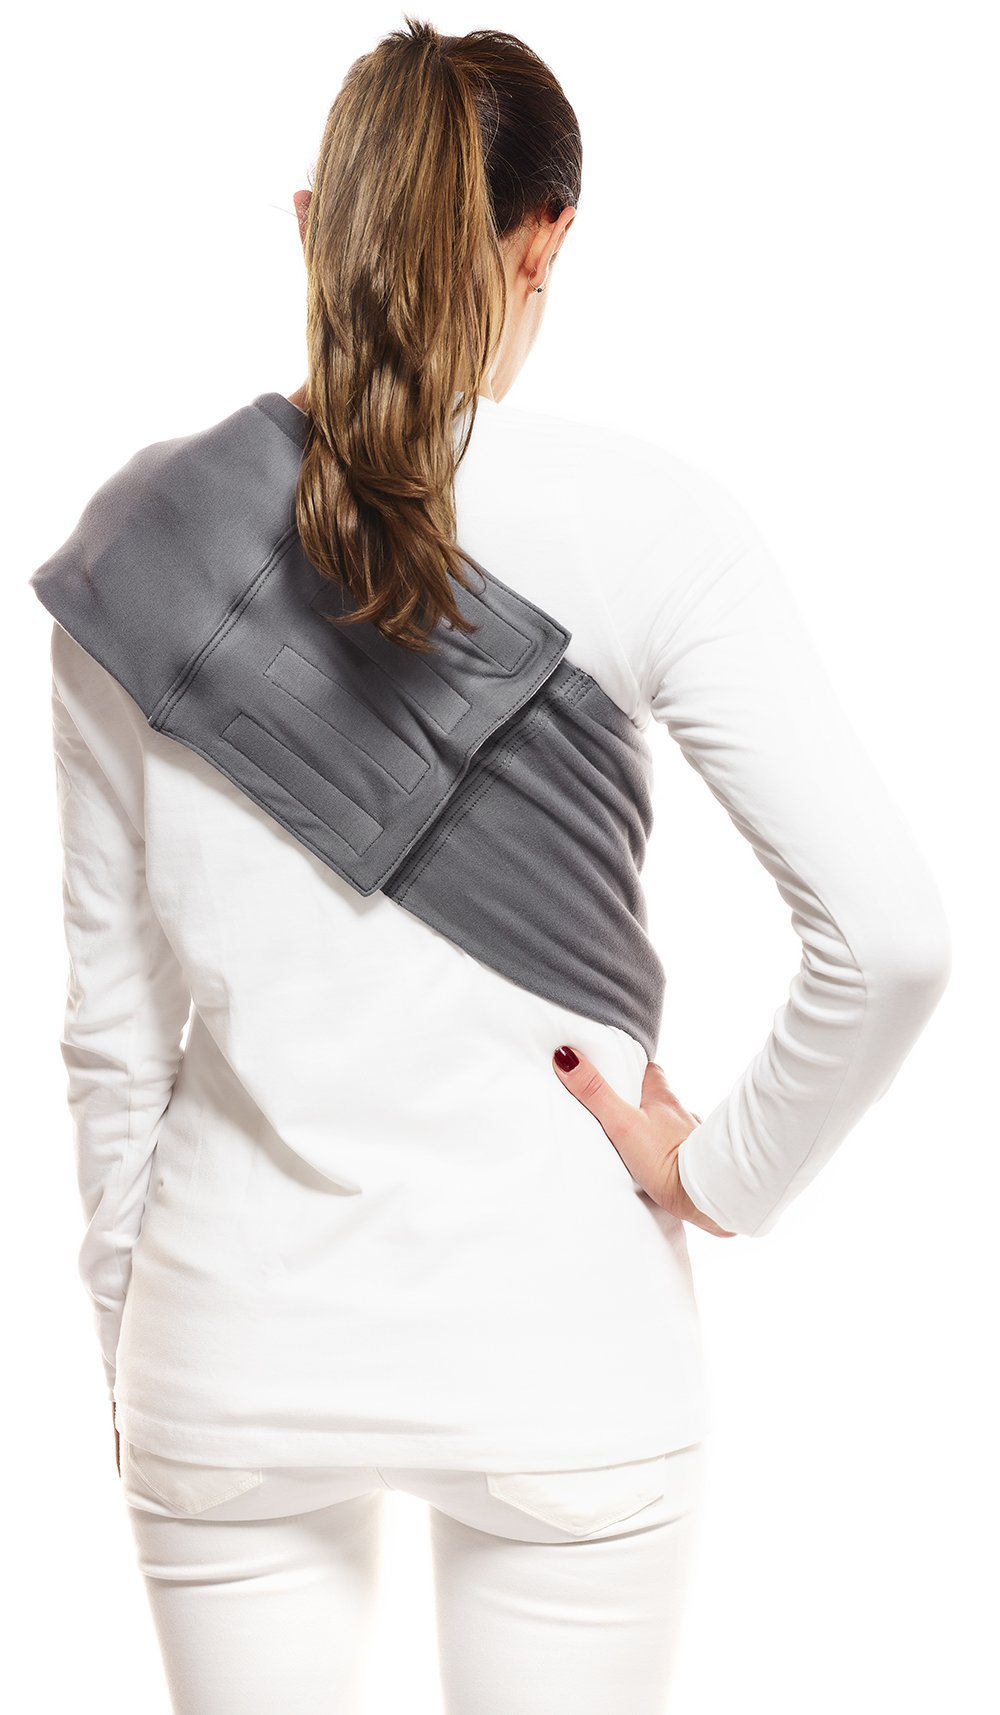 Wallaboo Wrap Sling Carrier Connection, Easy Adjustable, Ergonomic, 3 Carrying Positions, Newborn 8lbs to 33 lbs, Soft Breathable Cotton, 3 Sitting Positions, EU Safety Tested, Color: Grey / Silver Wallaboo Ergonomically correct design with three natural positions: sleep, sit and active- one size fits all Can be used from premature baby through to 33lbs - with easy-to-use features like a full-front opening and an adjustable back Single piece of fabric, no straps, belts or buckles - partly padded to give extra comfort- no wrapping, no hardware. ready to wear 4